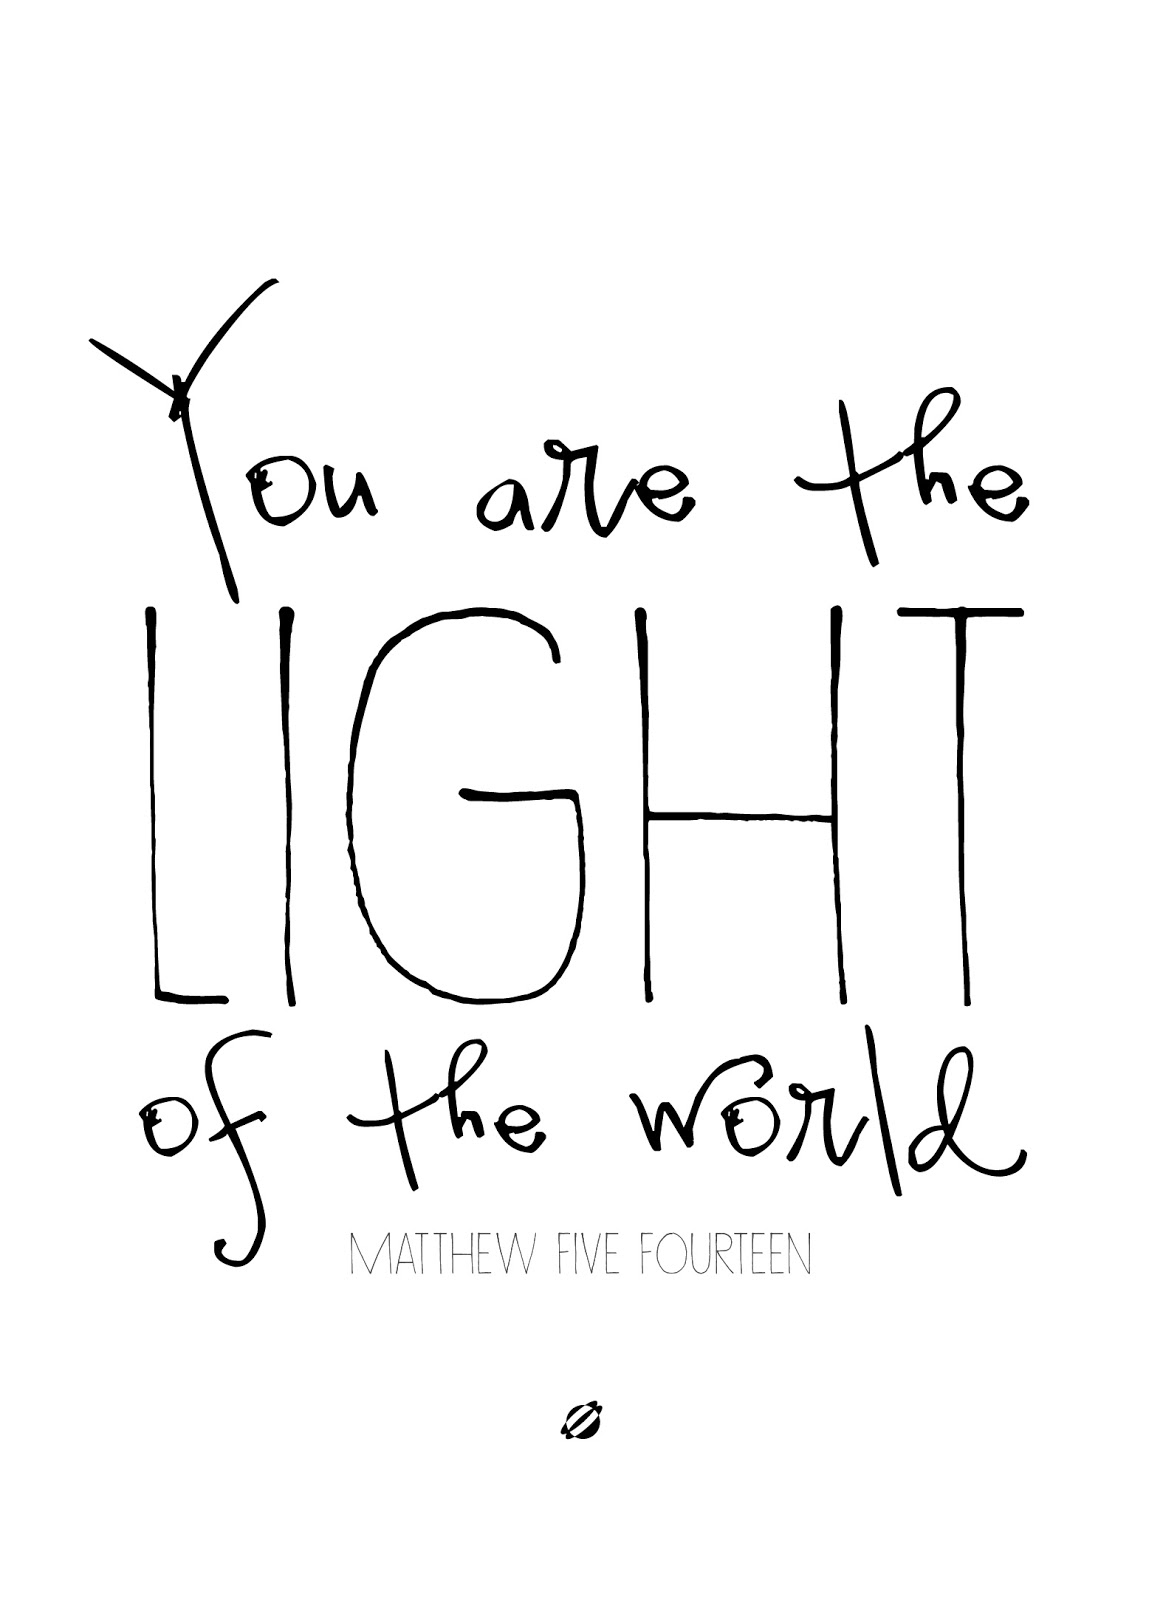 LostBumblebee ©2014 Light of the World Awesome FREE PRINTABLE